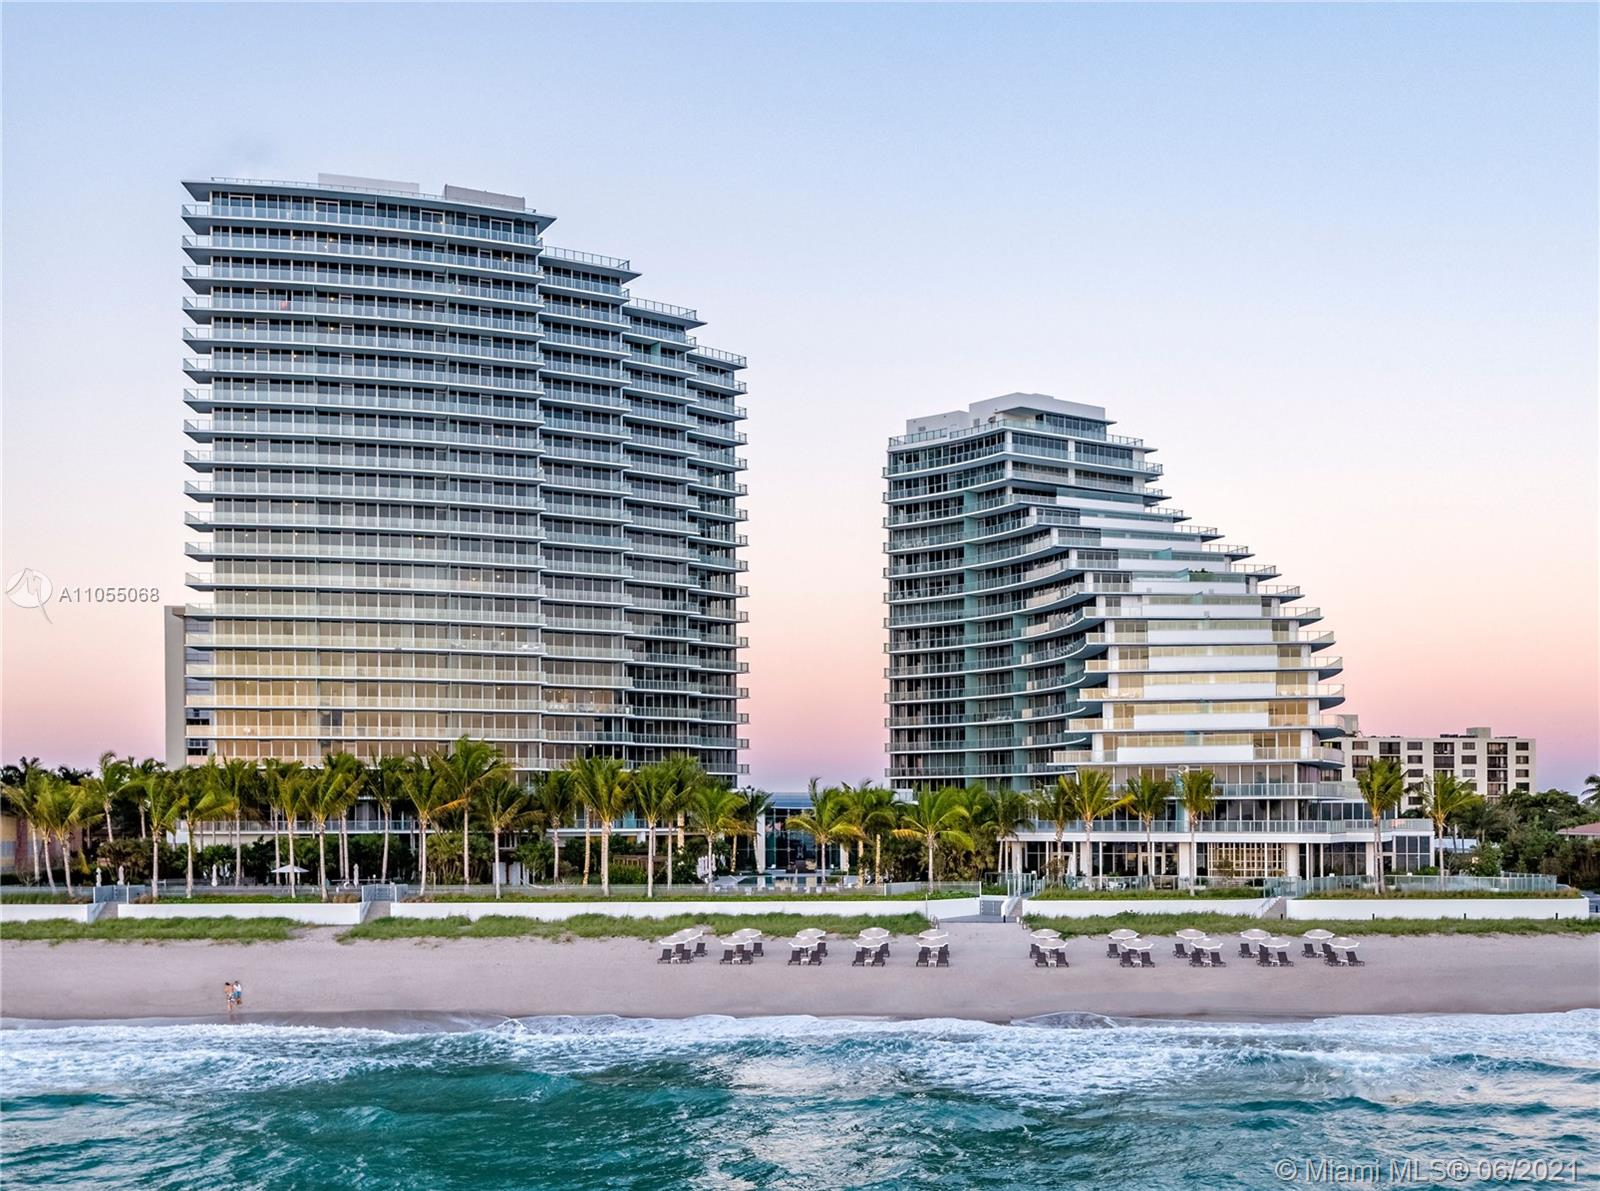 AUBERGE BEACH RESIDENCES OFFERS ELEGANCE,STYLE AND COMFORT. LOCATED ON THE SANDS OF FT.LAUDERDALE BEACH ON 450 FEET OF BEACHFRONT OASIS. THIS IS AN OCEAN FRONT ESCAPE. LUSH LANDSCAPED GARDENS,TWO POOLS, CABANAS,STATE OF THE ART FITNESS CENTER, CHILDREN'S AND TEENS GAME ROOM, CIGAR,BILLIARD,GOLF SIMULATOR,NAPA VALLEY WINE ROOM,PAMPER YOURSELF AT THE AUBERGE  FULL SERVICE SPA. SPECTACULAR AND UNOBSTRUCTED OCEAN VIEWS WITH FLOOR TO CEILING WINDOWS, EQUIPPED WITH STATE OF THE ART APPLIANCES AND ITALIAN CABINETRY,WOLF GAZ STOVE, SUBZERO FRIDGE,WINE COOLER, EXPRESSO SYSTEM KITCHEN WAS EXTENDED AND DESIGNED FOR CONVENIENCE AND PERFECT FOR THE INSPIRED HOME CHEF.    FLO0RS,AUTOMATIC WINDOWS SHADES,FURNISHED AND READY FOR YOUR PERSONAL FINISHES.